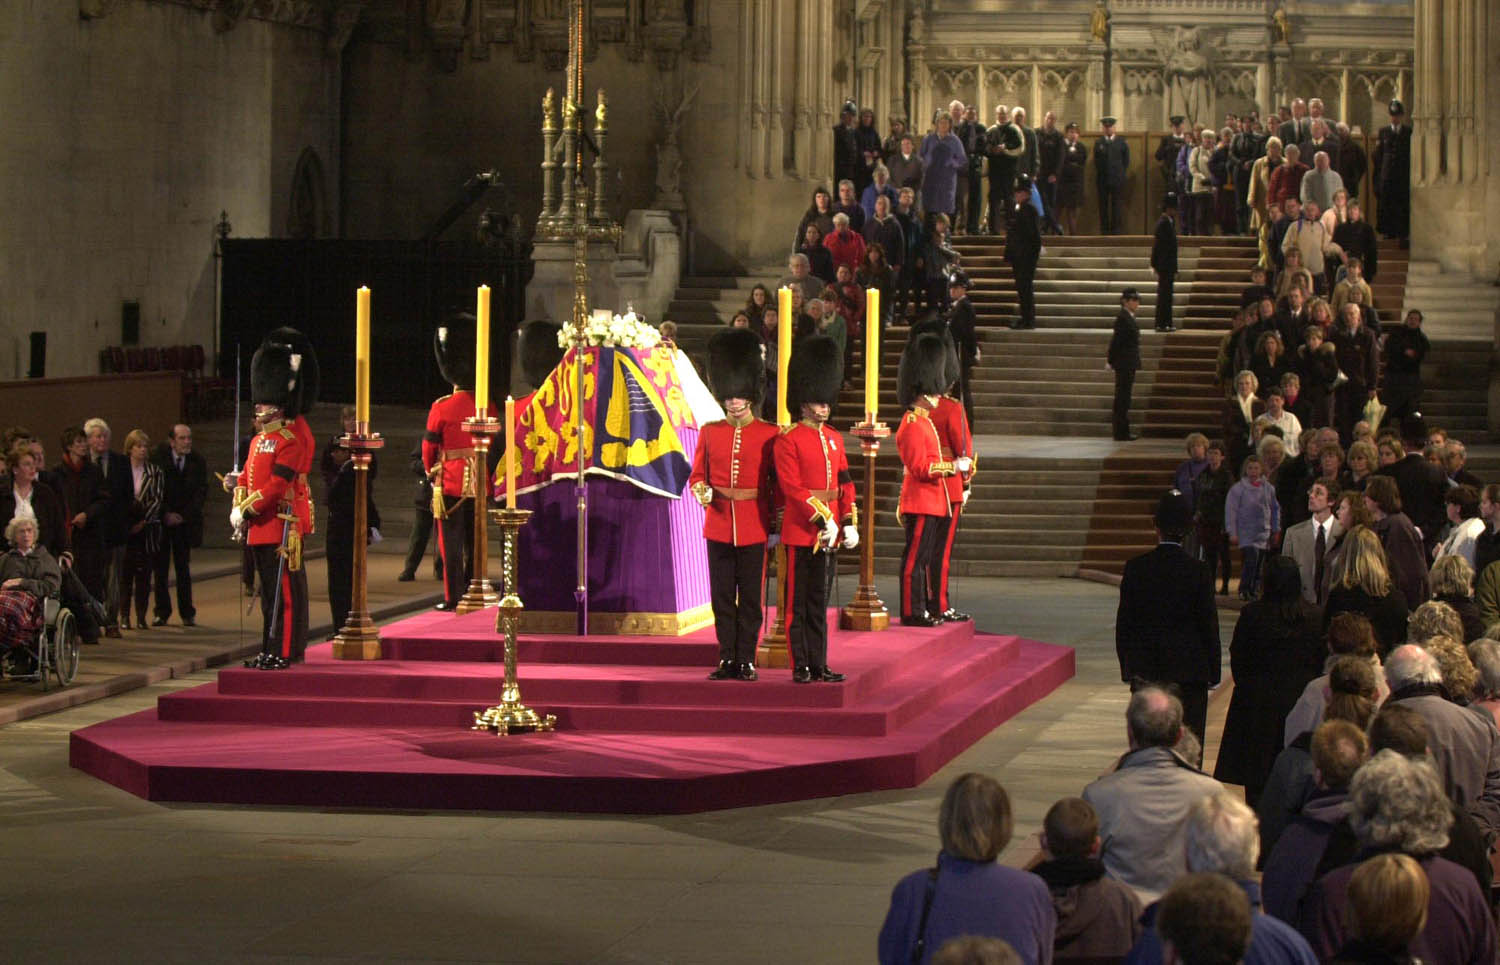 Guards Stand By The Coffin Of Queen Mother Laying In State At Westminster Hall   © Lynn Hilton / Mail On Sunday/REX/Shutterstock